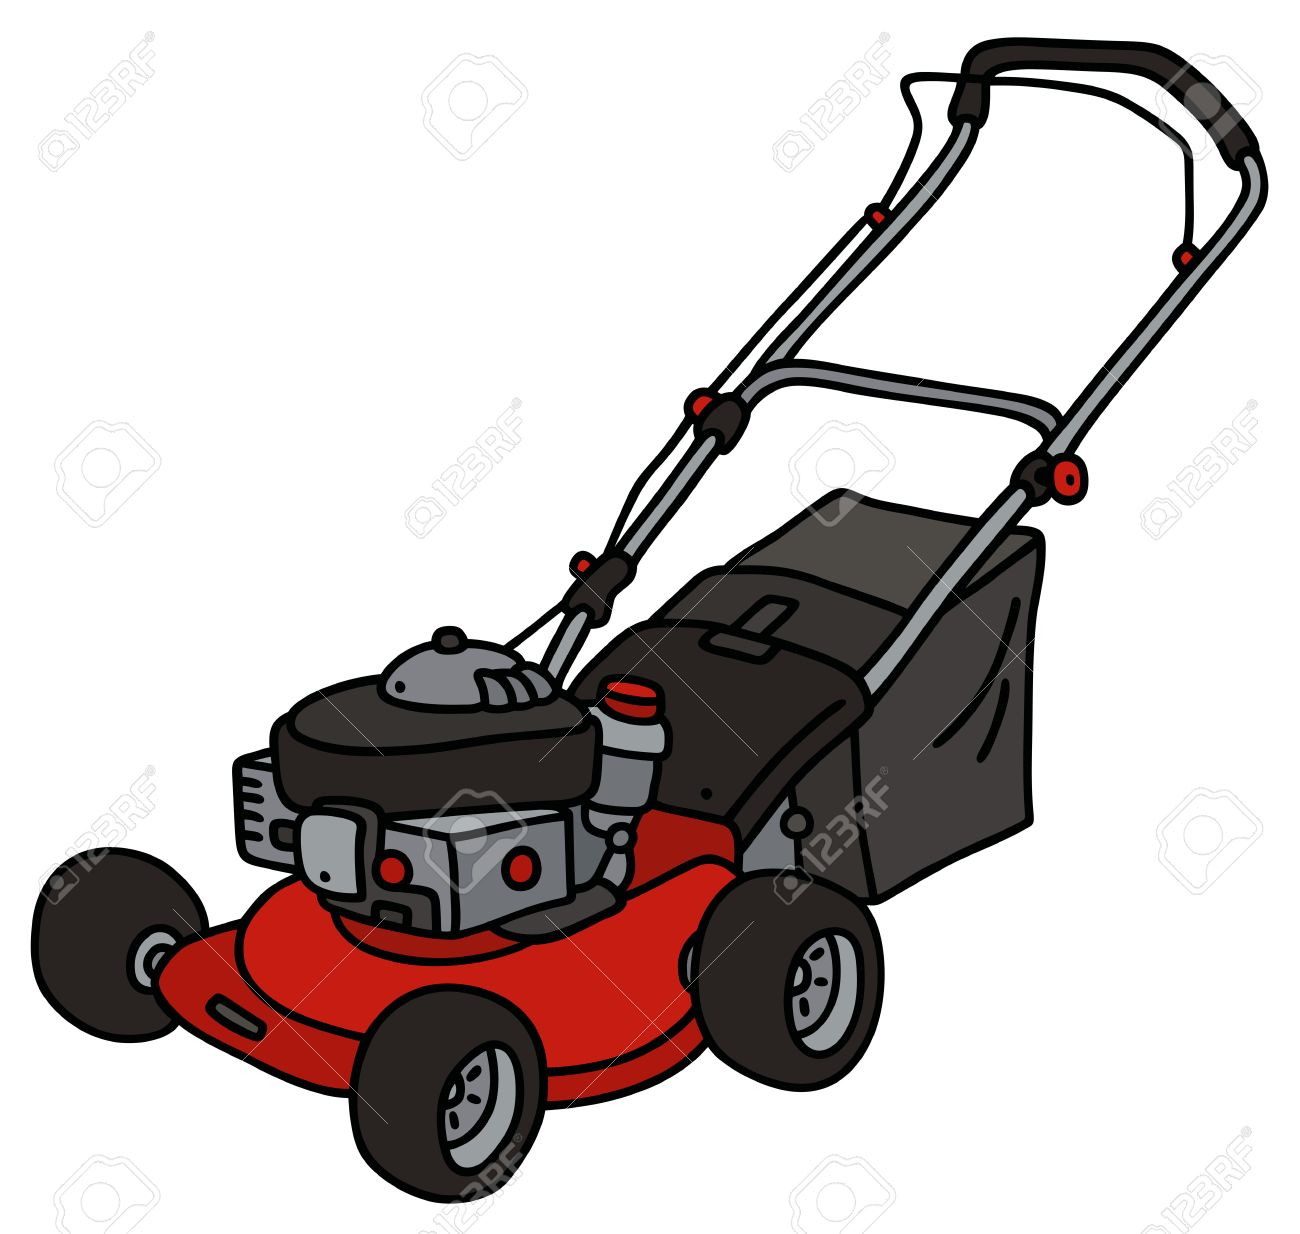 lawn mower drawing at getdrawings com free for personal use lawn rh getdrawings com cartoon lawn mower clipart free free lawn mower clipart images